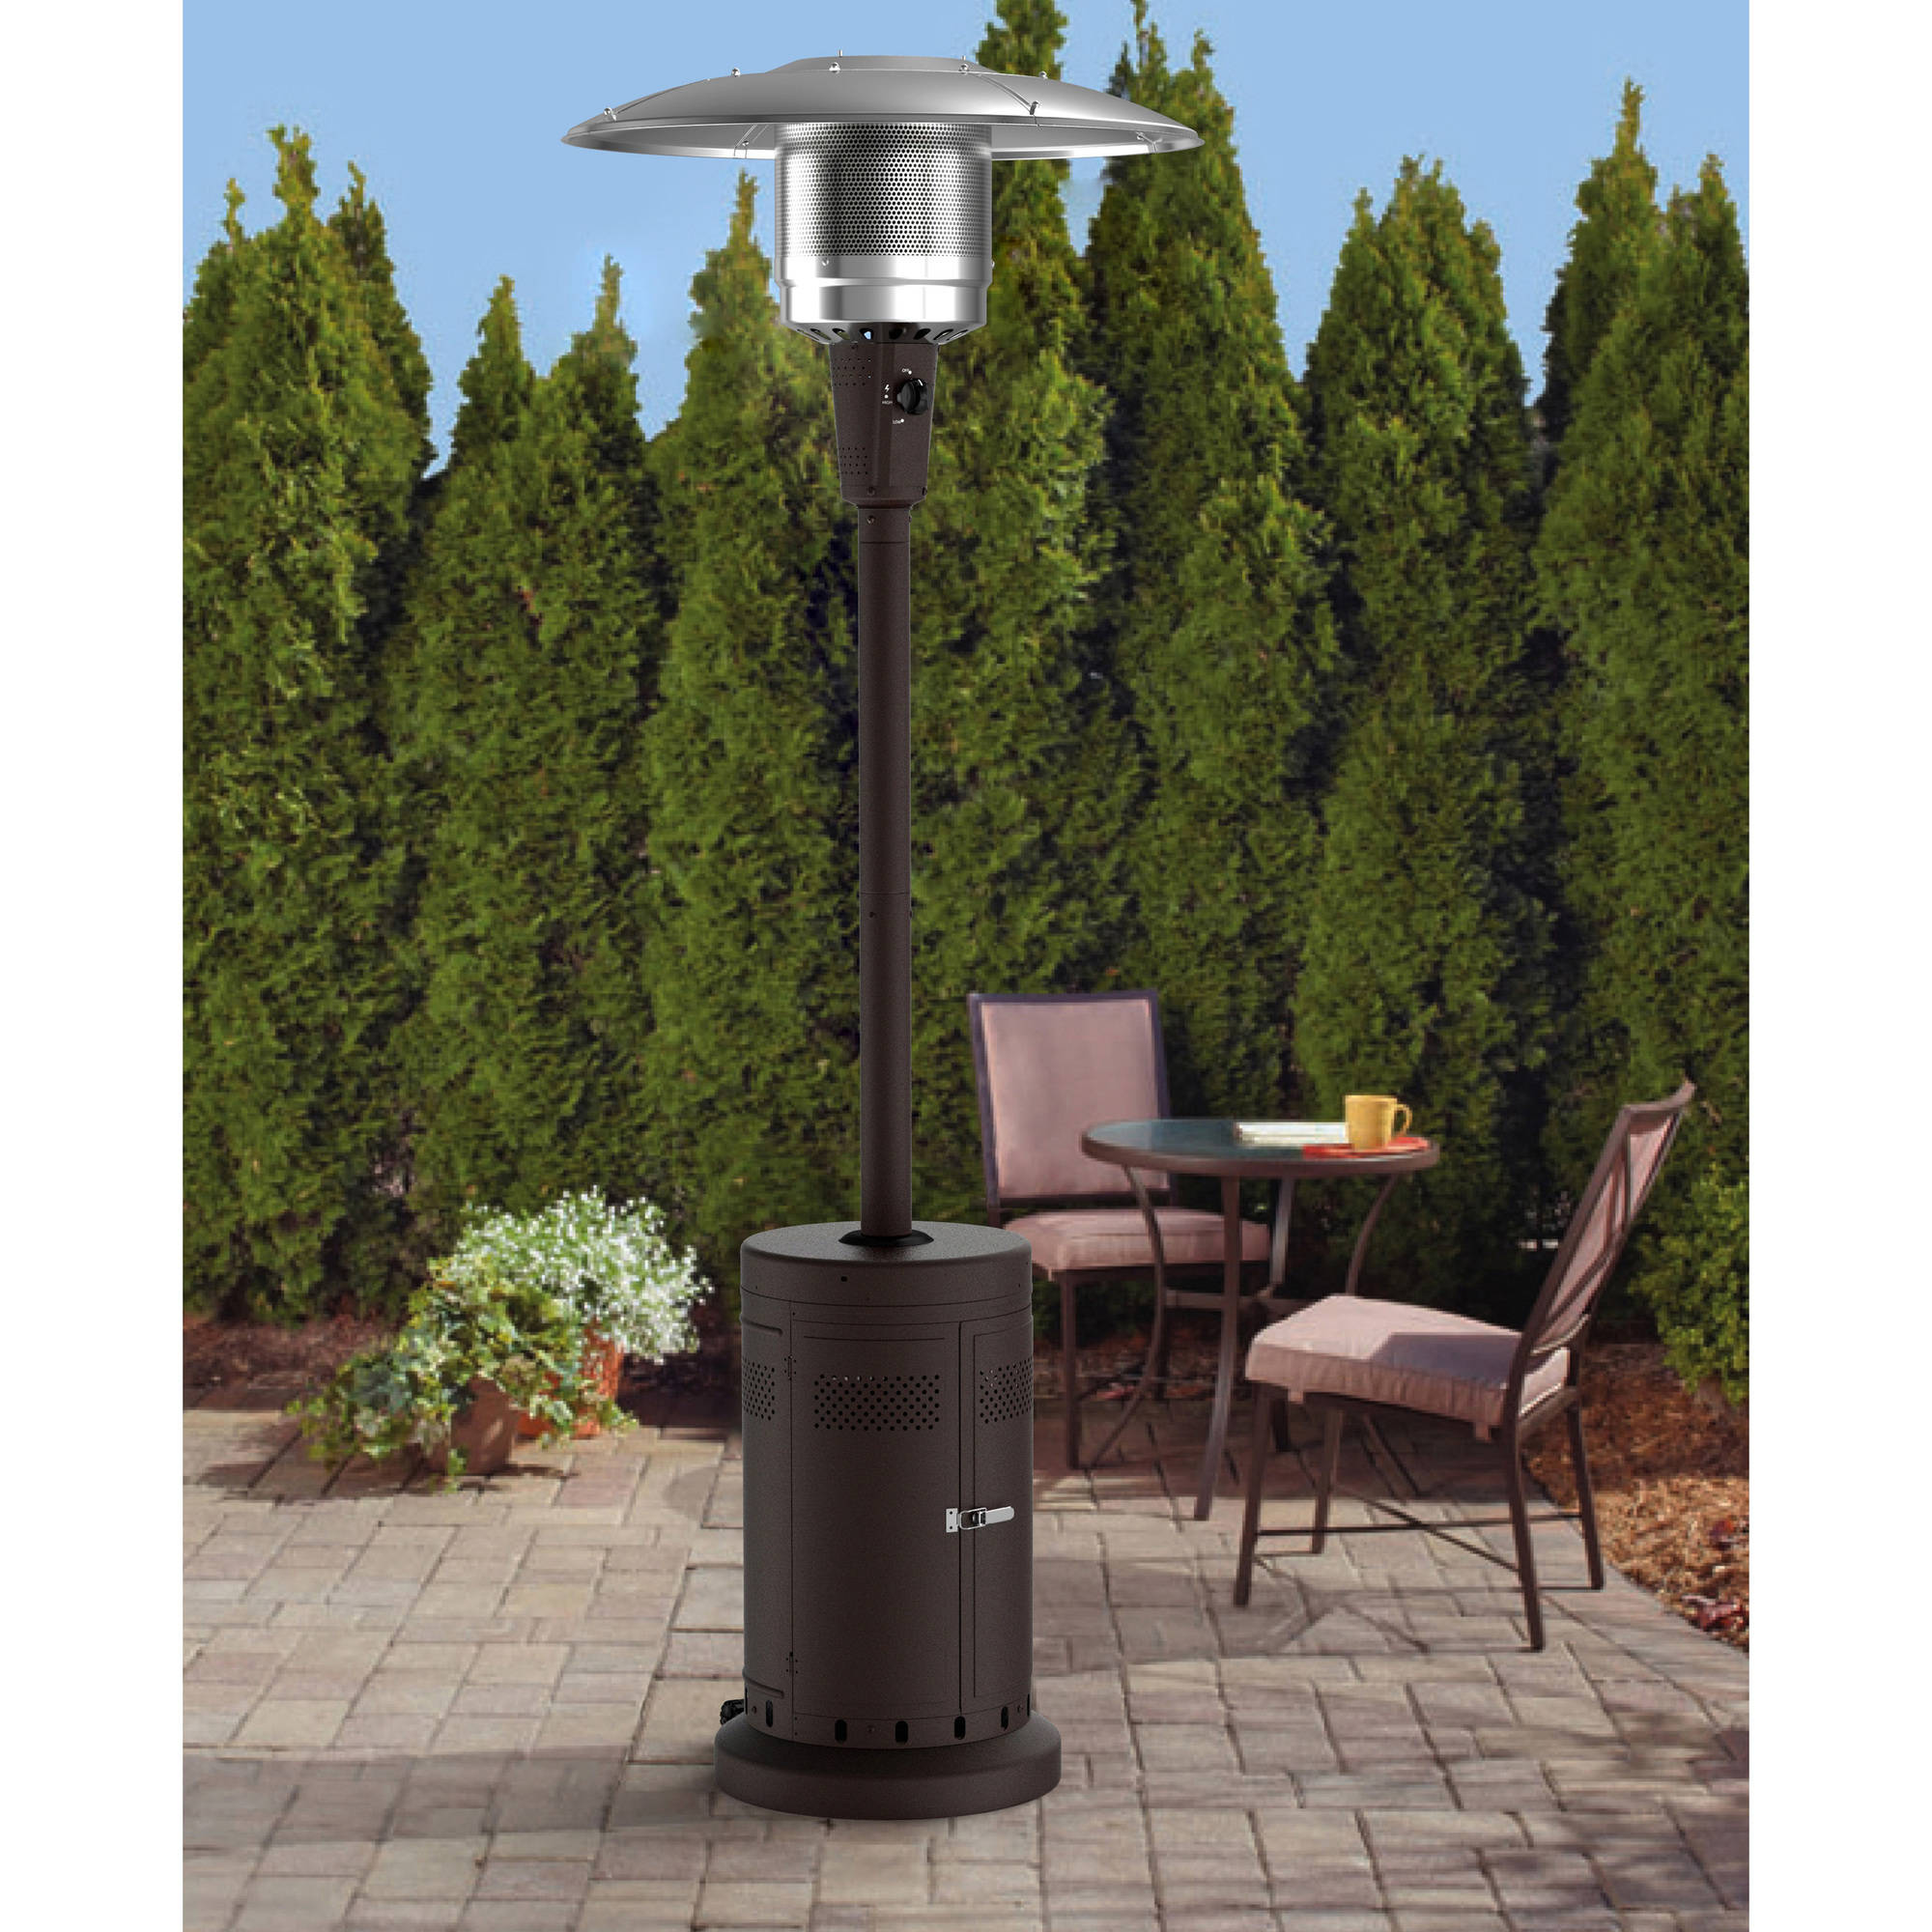 Charmant Mainstays Large Outdoor Patio Heater, Powder Coat Brown